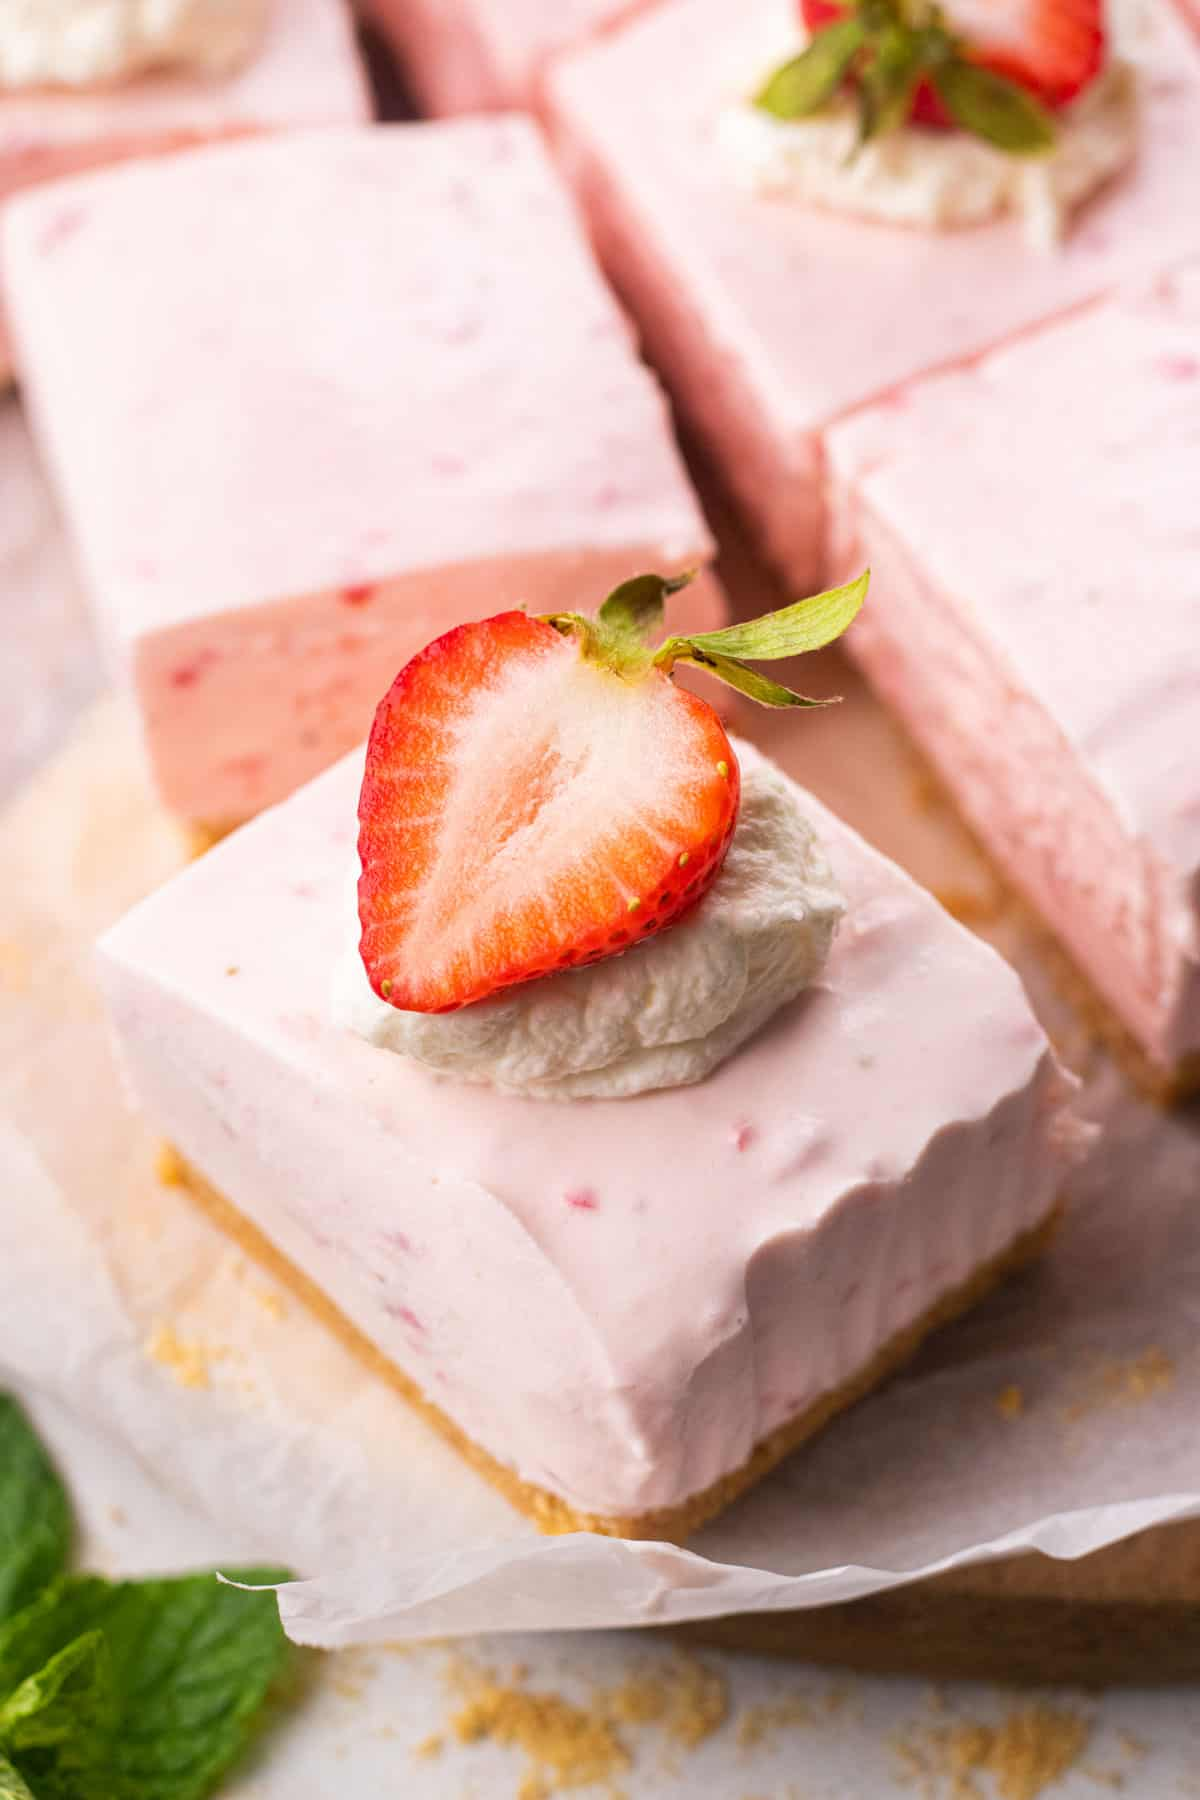 Strawberry cheesecake bar, topped with whipped cream and a strawberry.